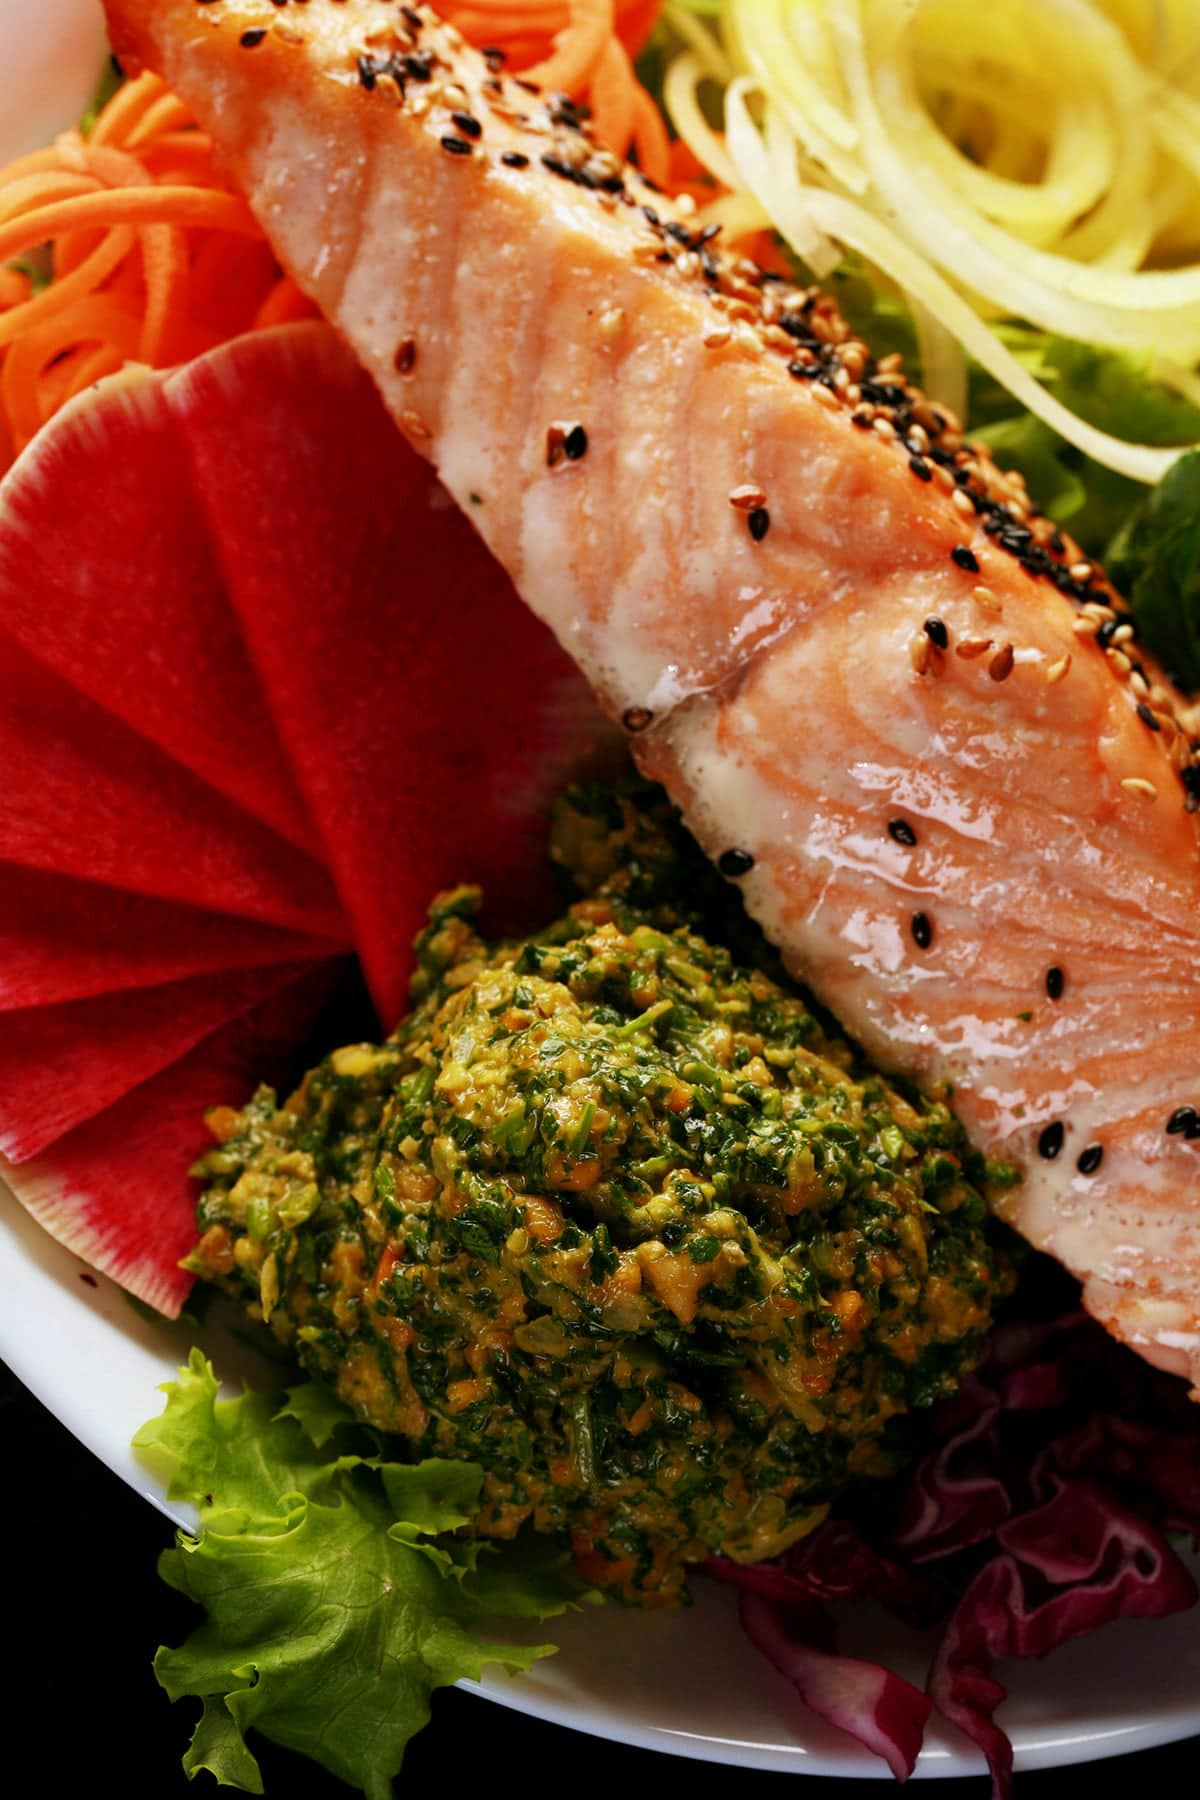 A large scoop of cilantro pesto is shown against the backdrop of a gloriously colourful salad - greens, watermelon radish, spiralized carrots and yellow beets, cucumber, and purple cabbage, with a slice of baked salmon on top!